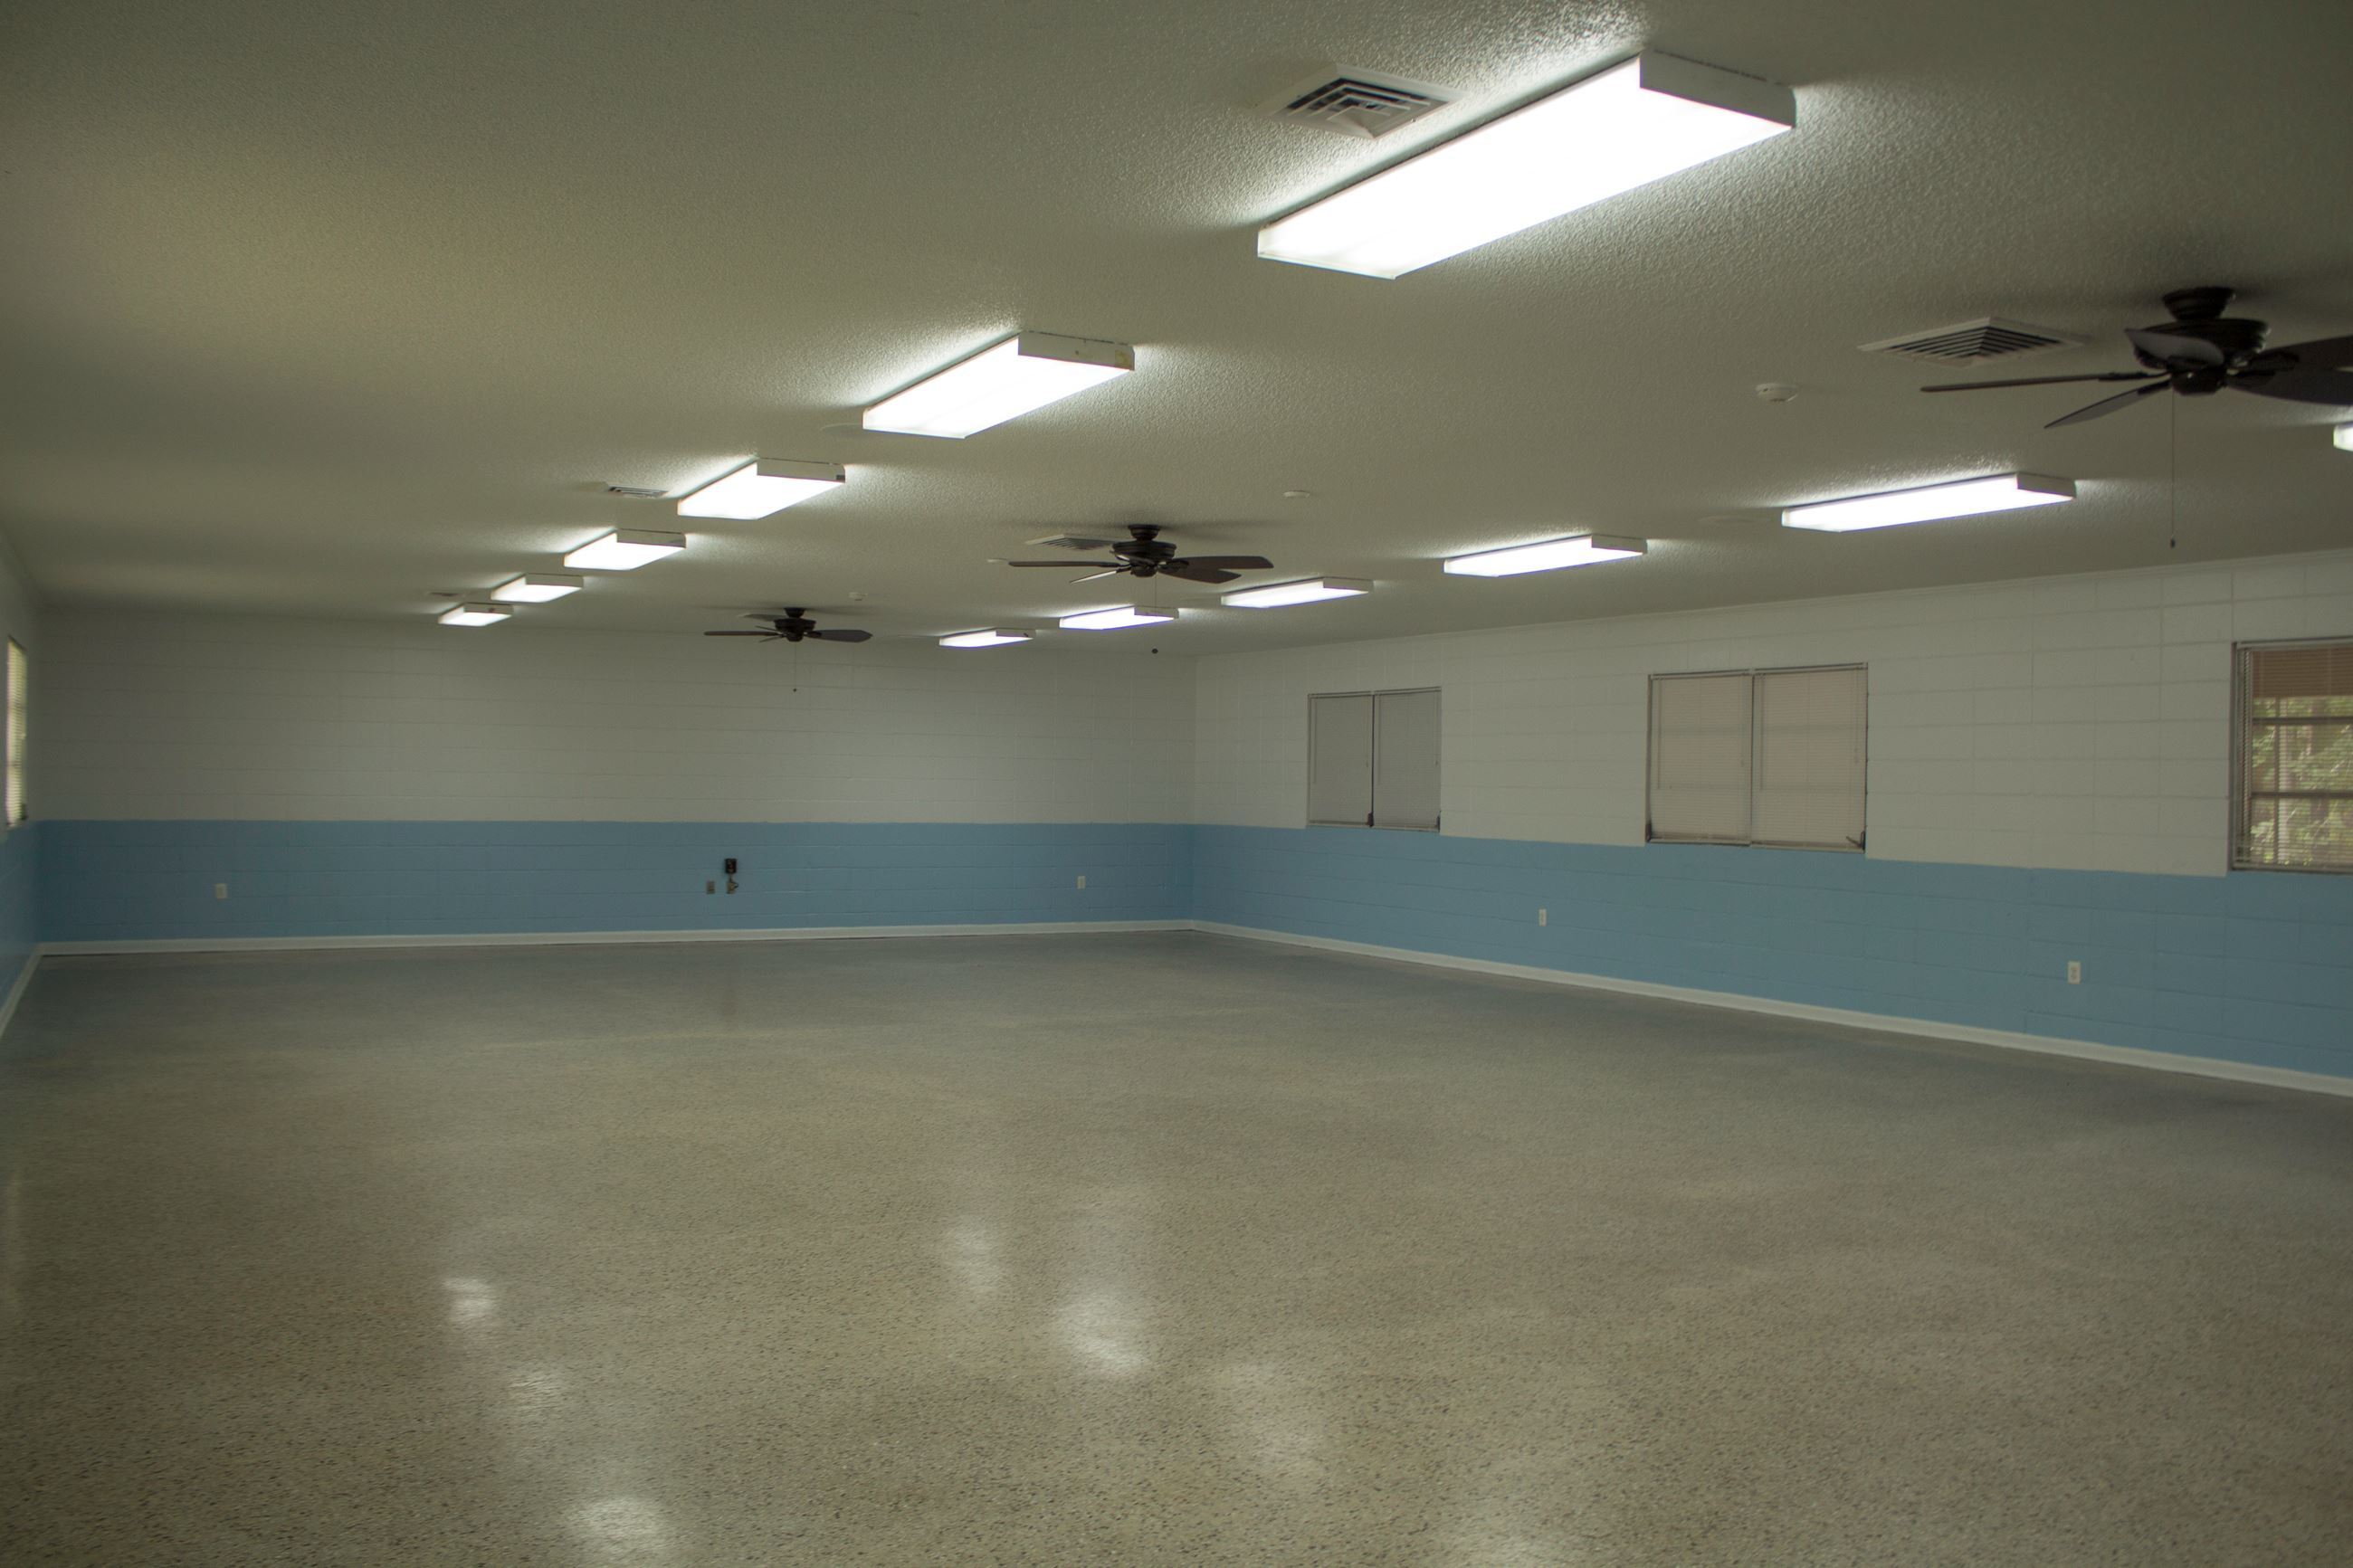 An image of a large multipurpose room with white and blue walls and fluorescent lighting.